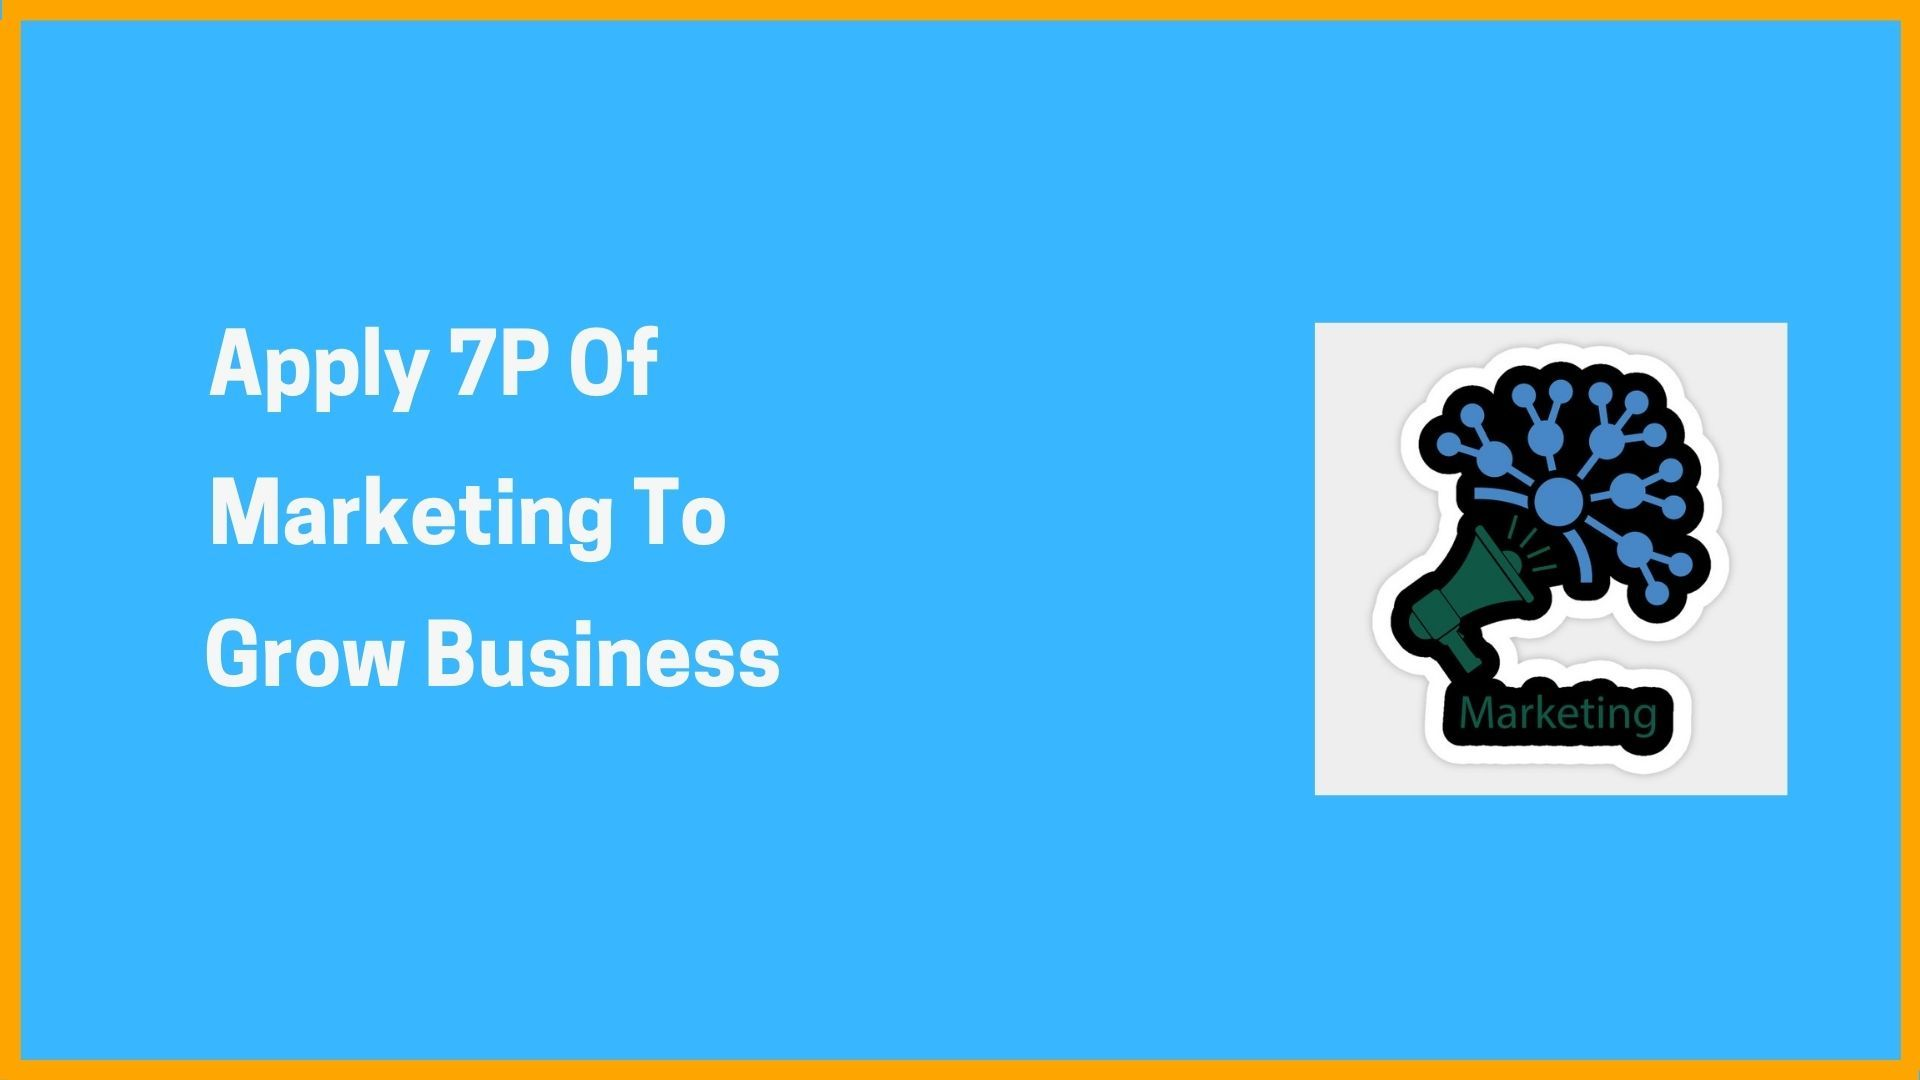 Apply 7P Of Marketing To Grow Business